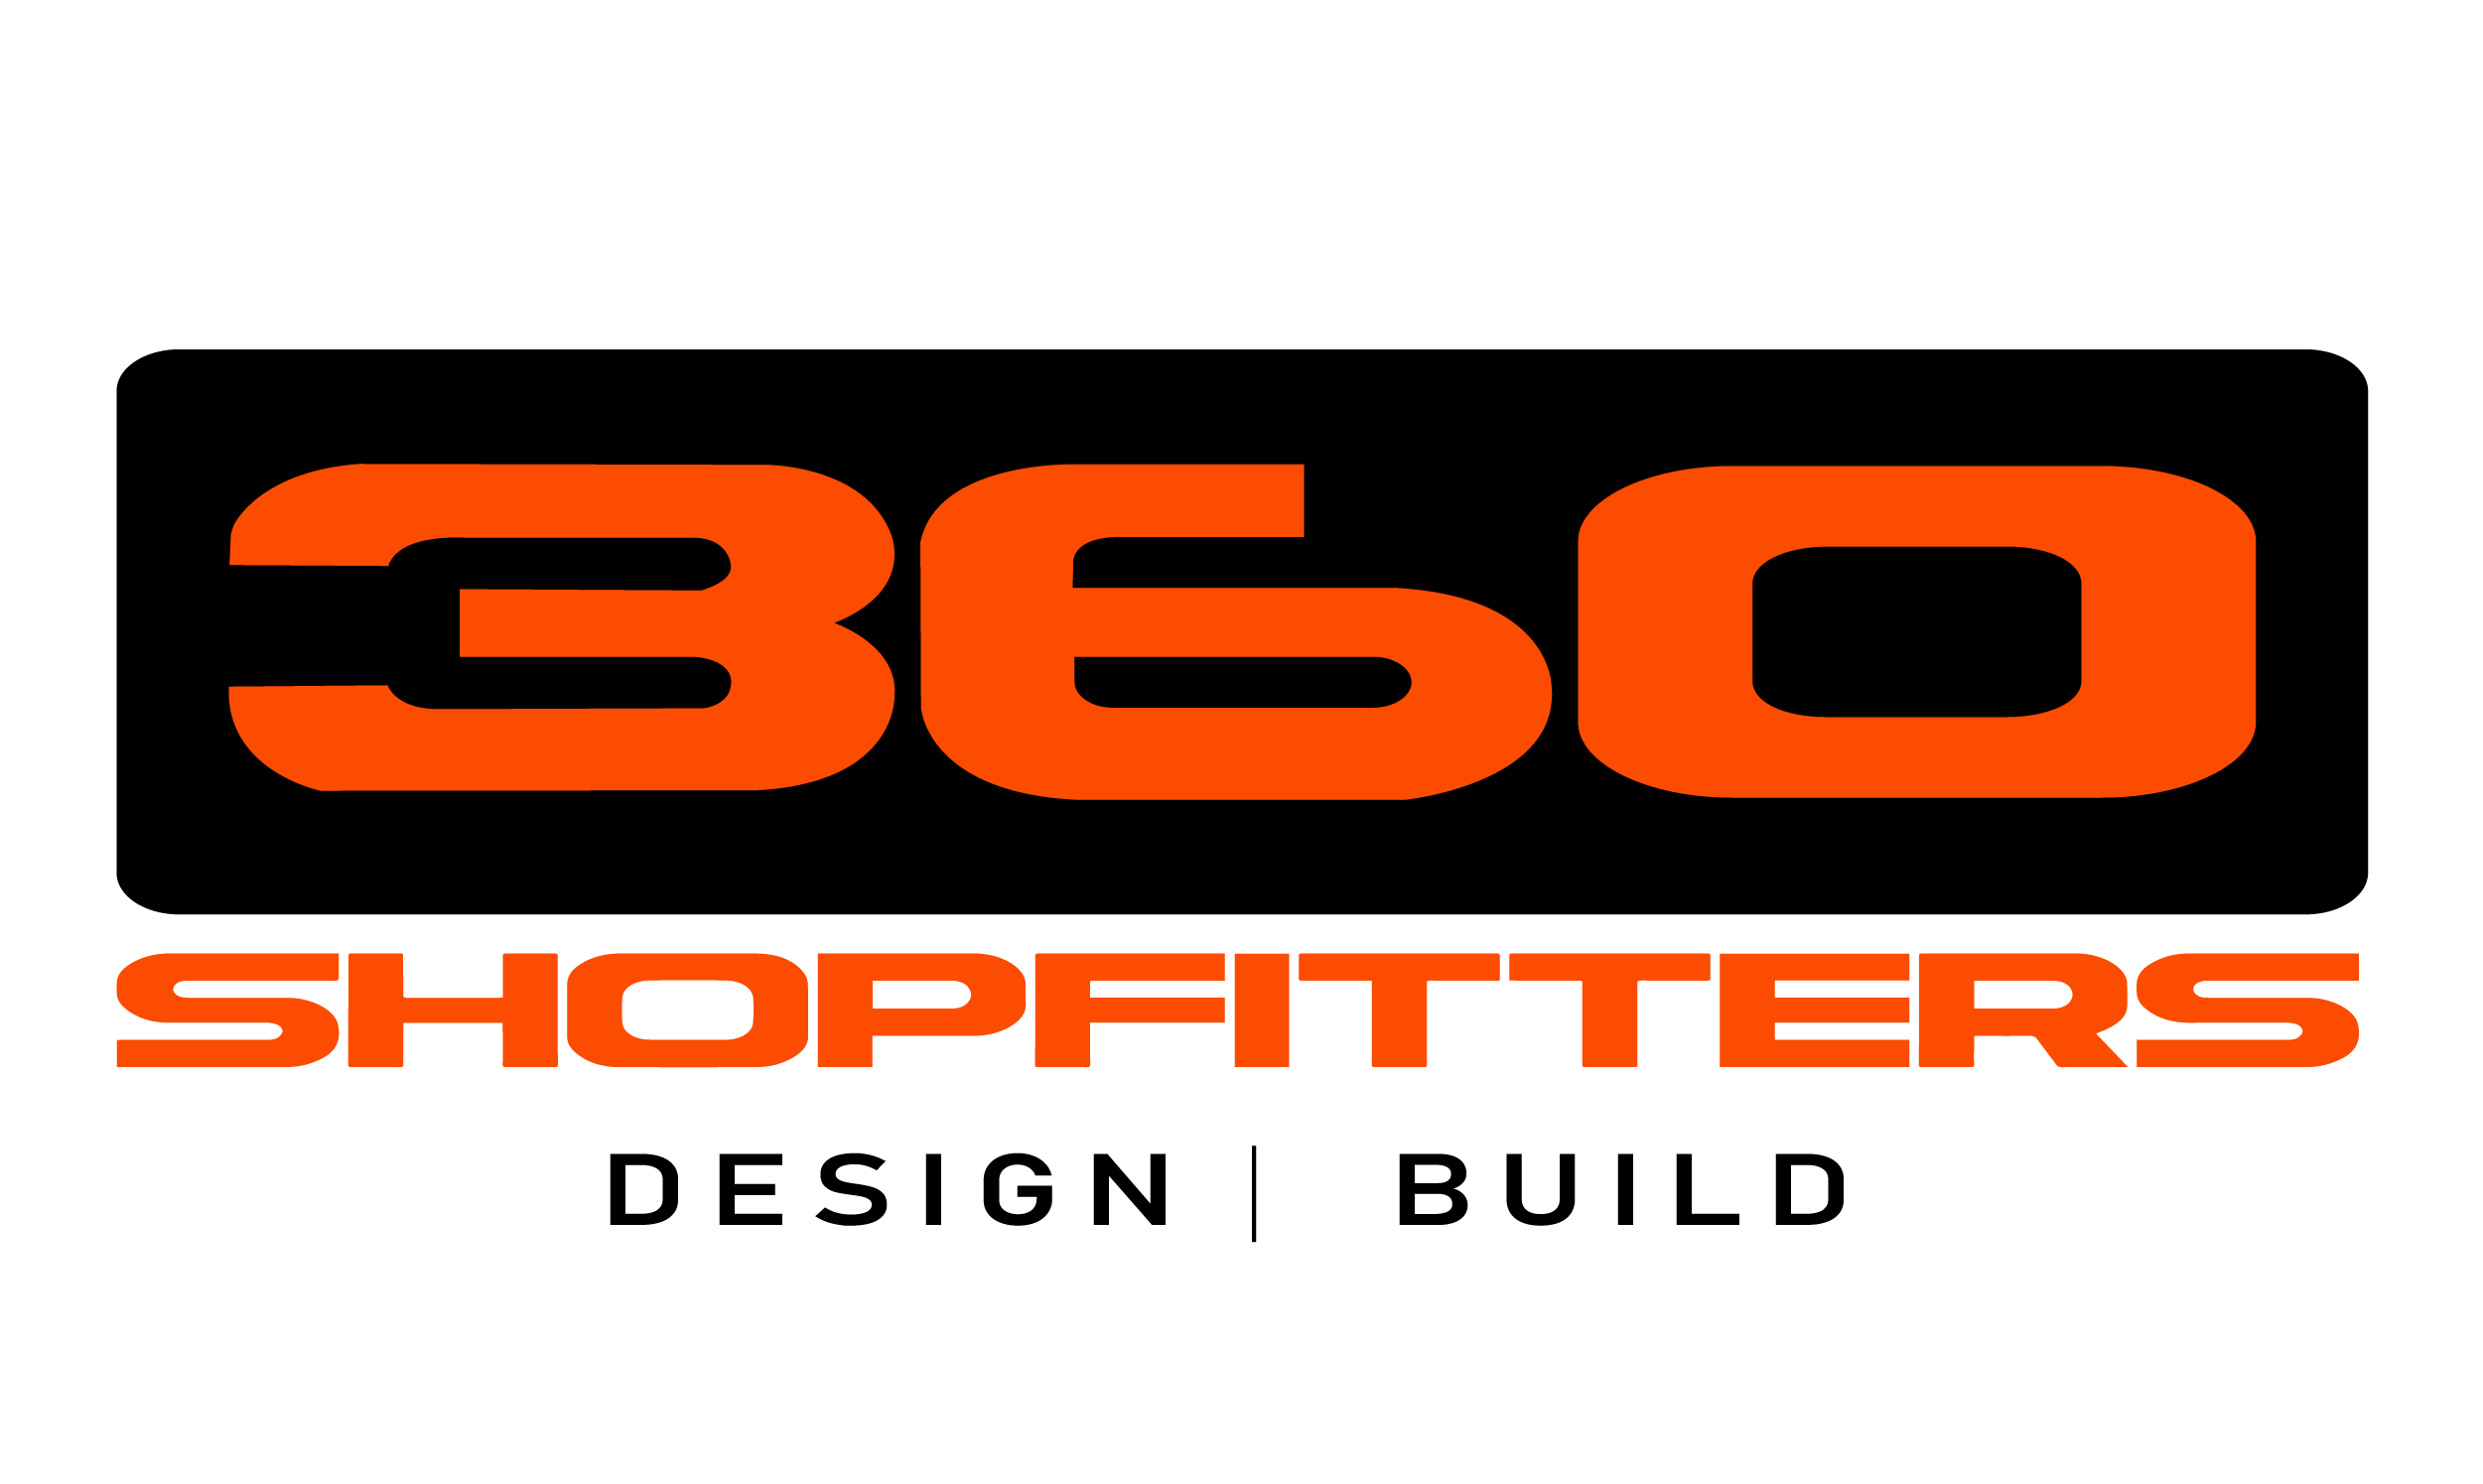 Melbourne – Design – Build – Shopfitters